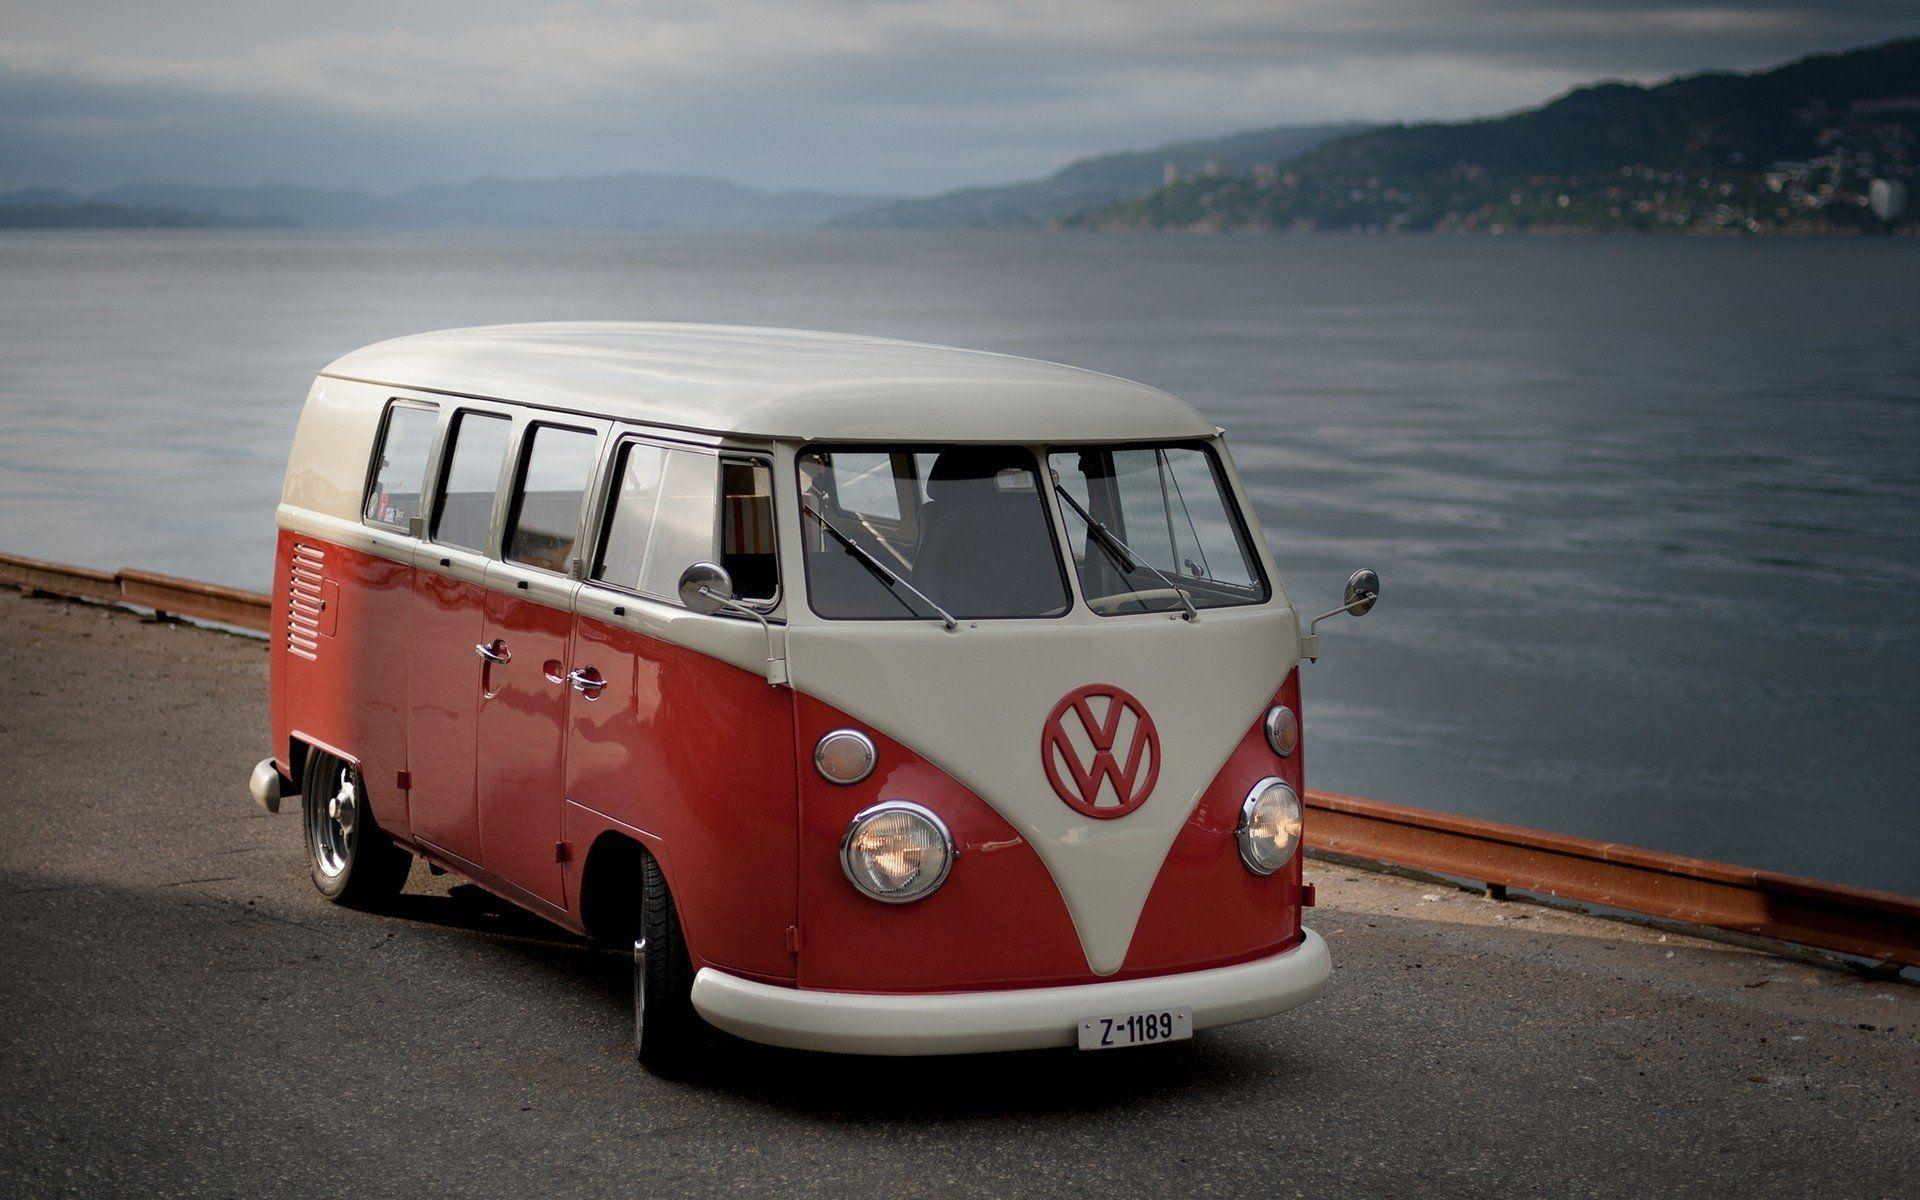 308 Volkswagen HD Wallpapers